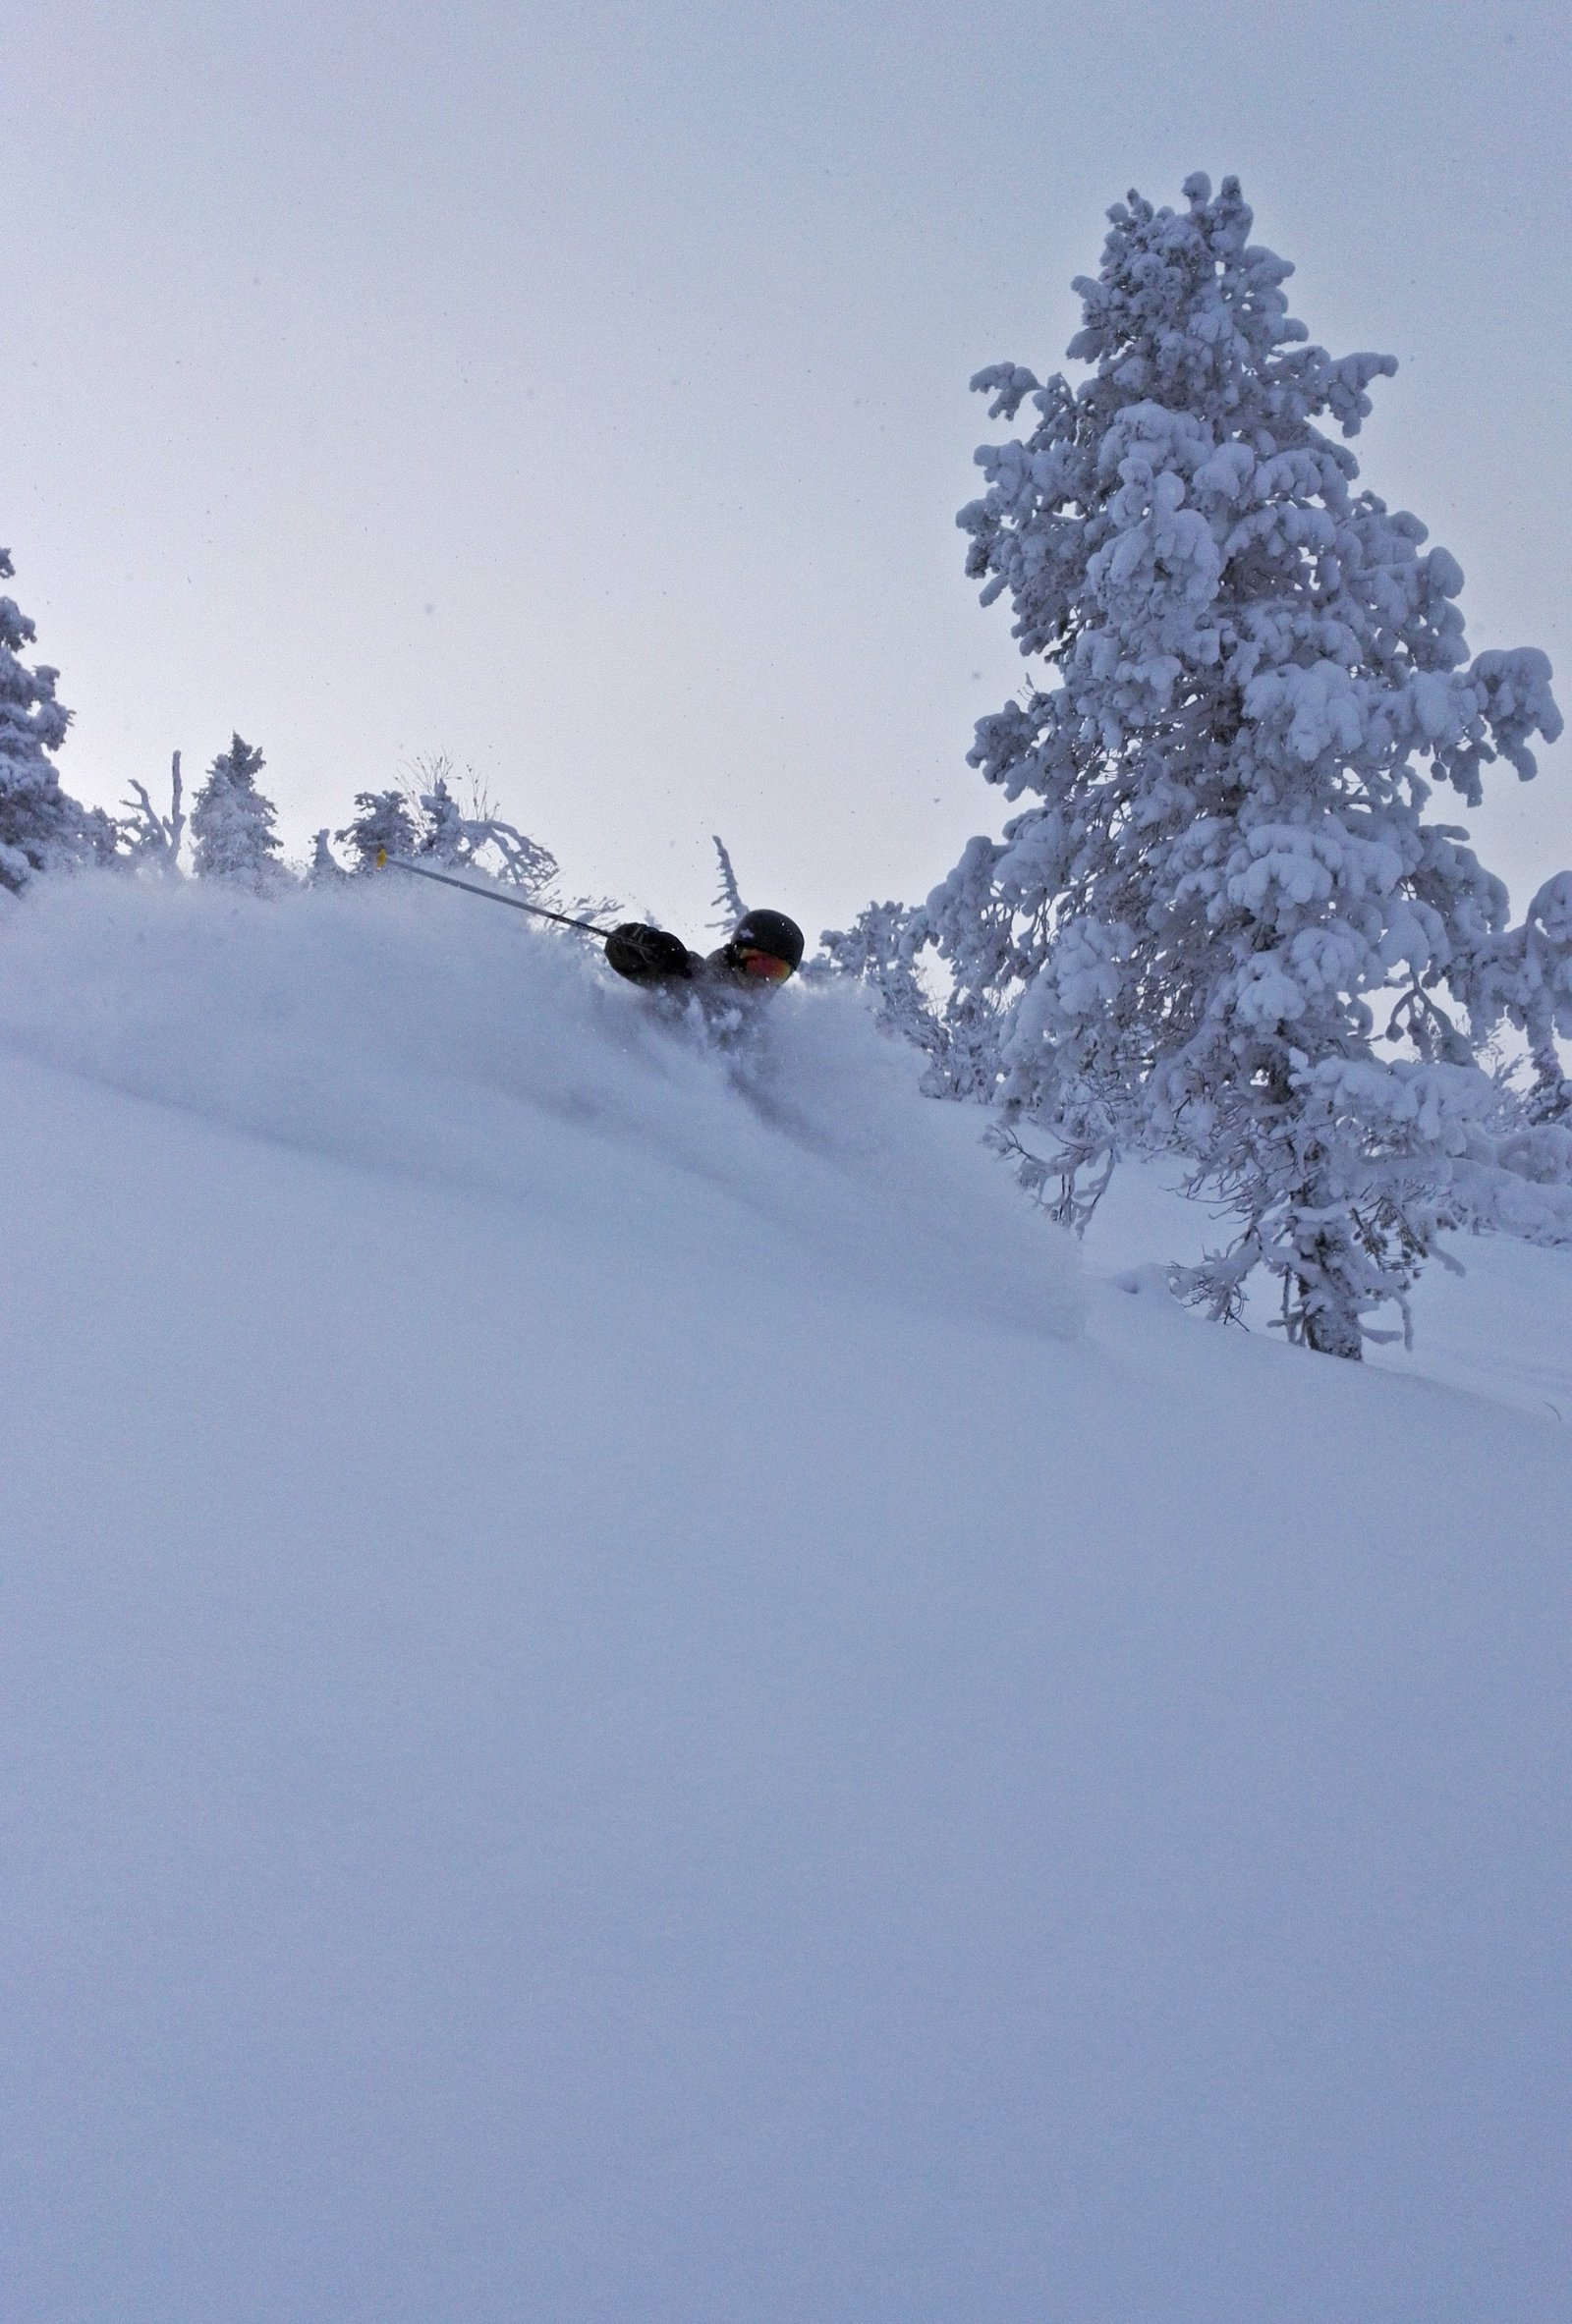 Powder at Ruka